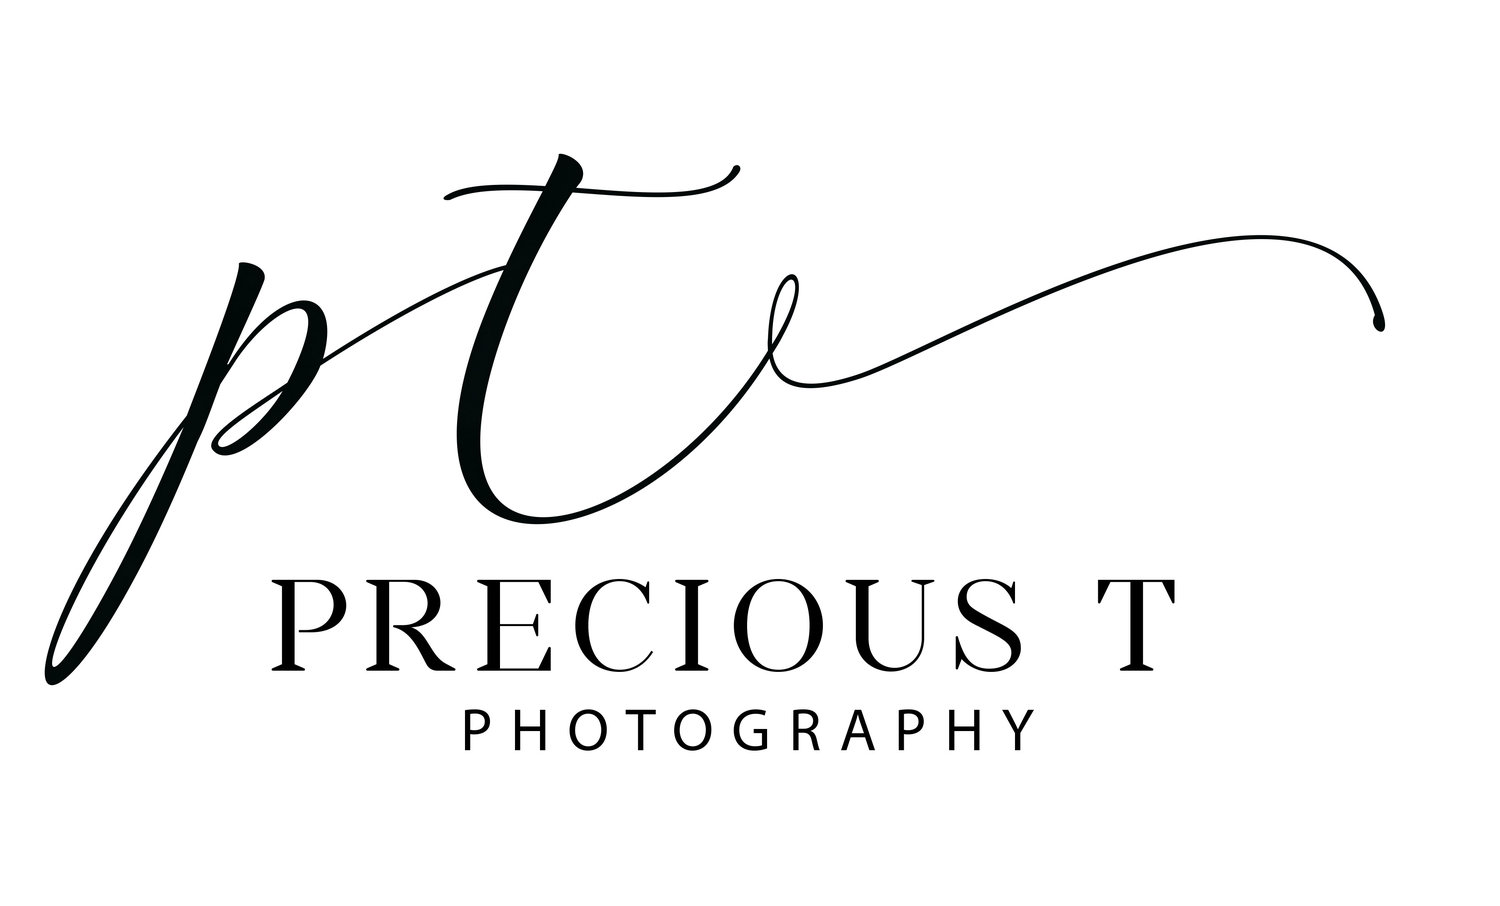 Precious T Photography